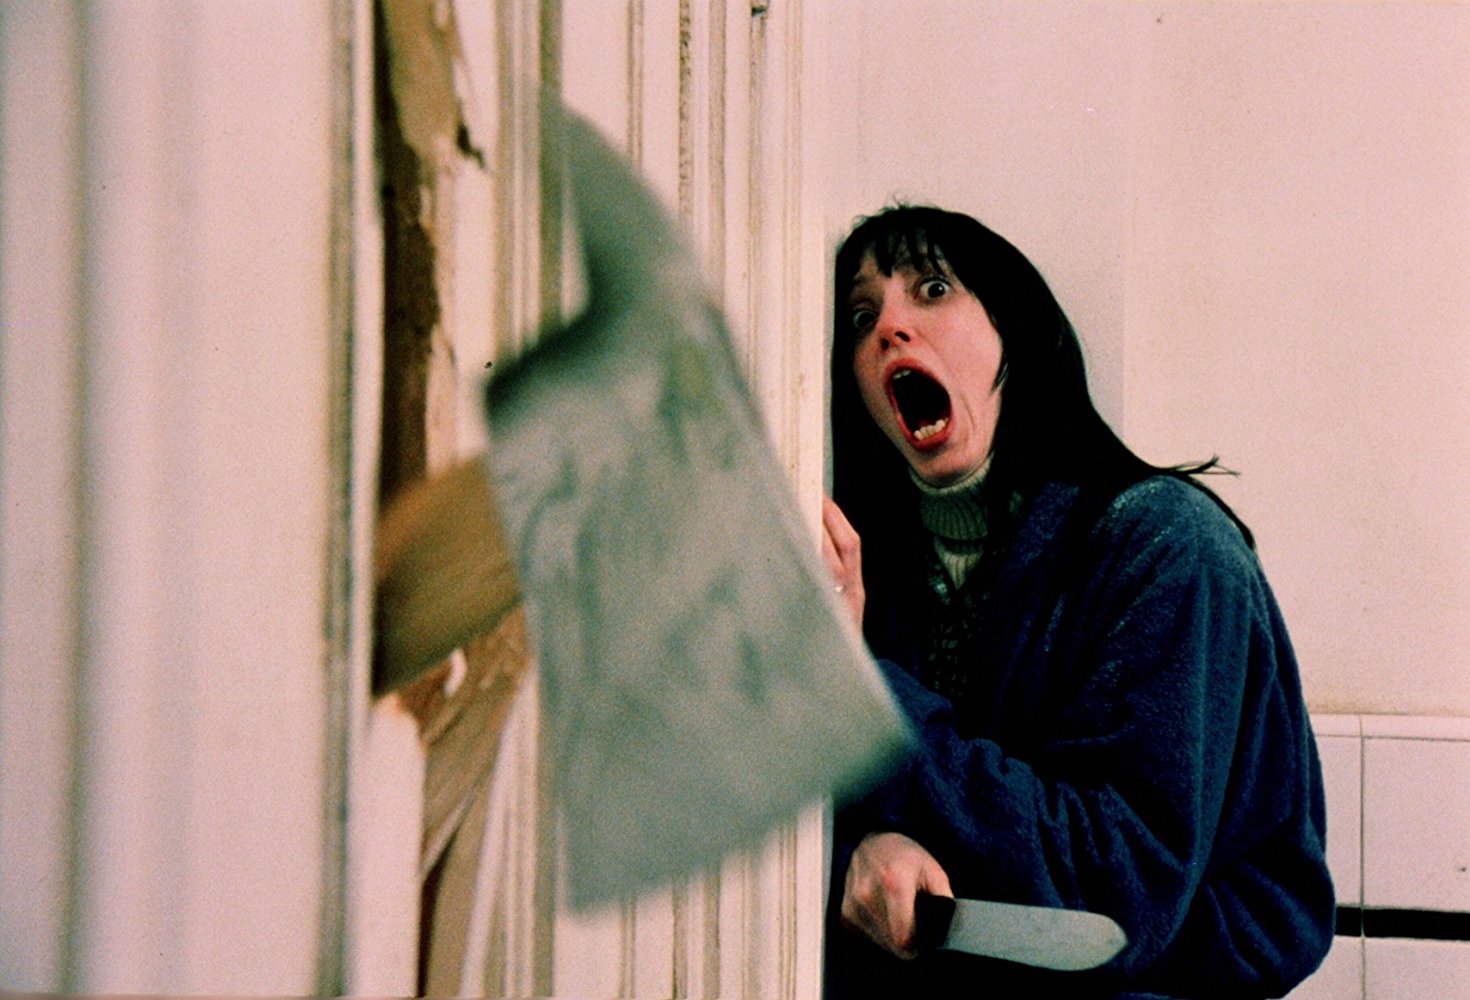 Shelley Duval facing an axe through the door in The Shining (1980)